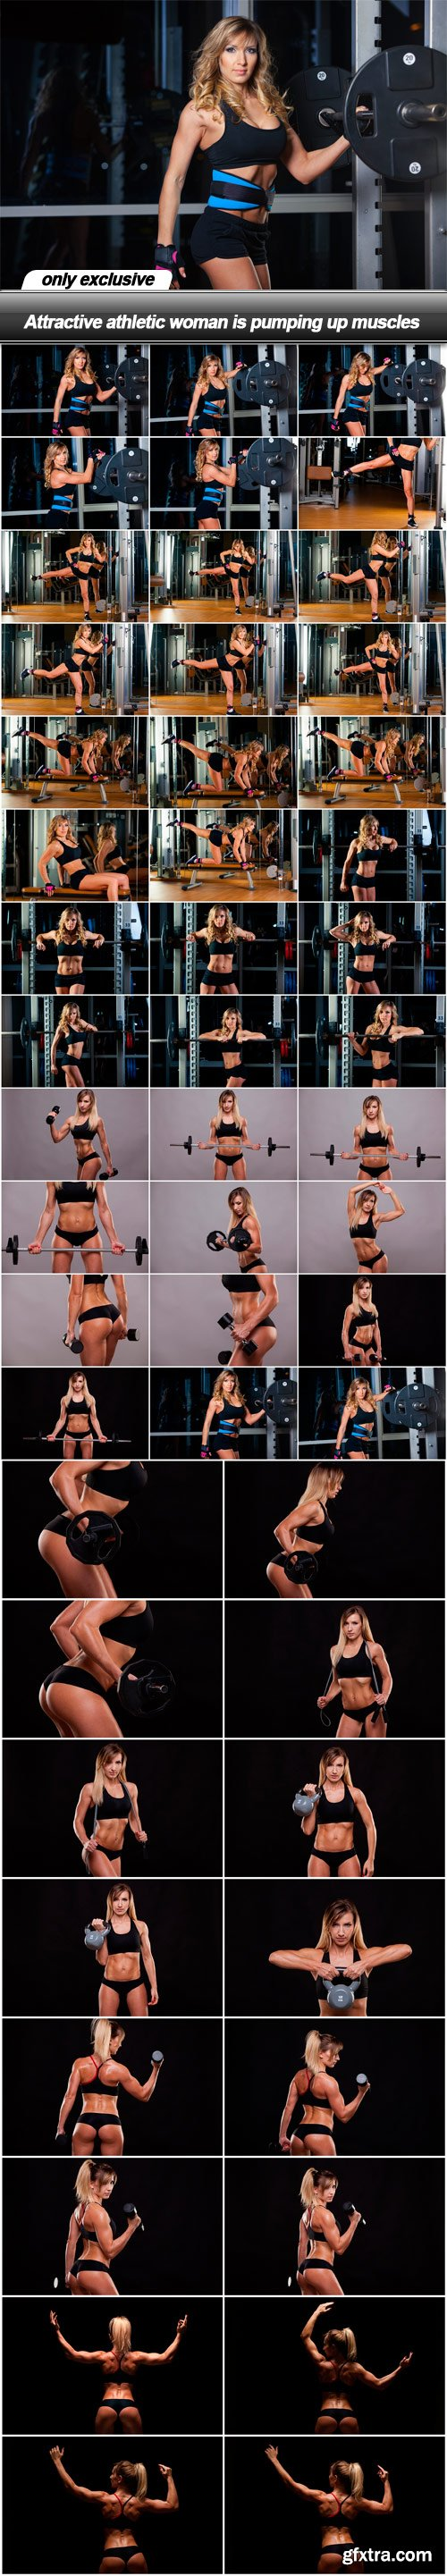 Attractive athletic woman is pumping up muscles - 50 UHQ JPEG